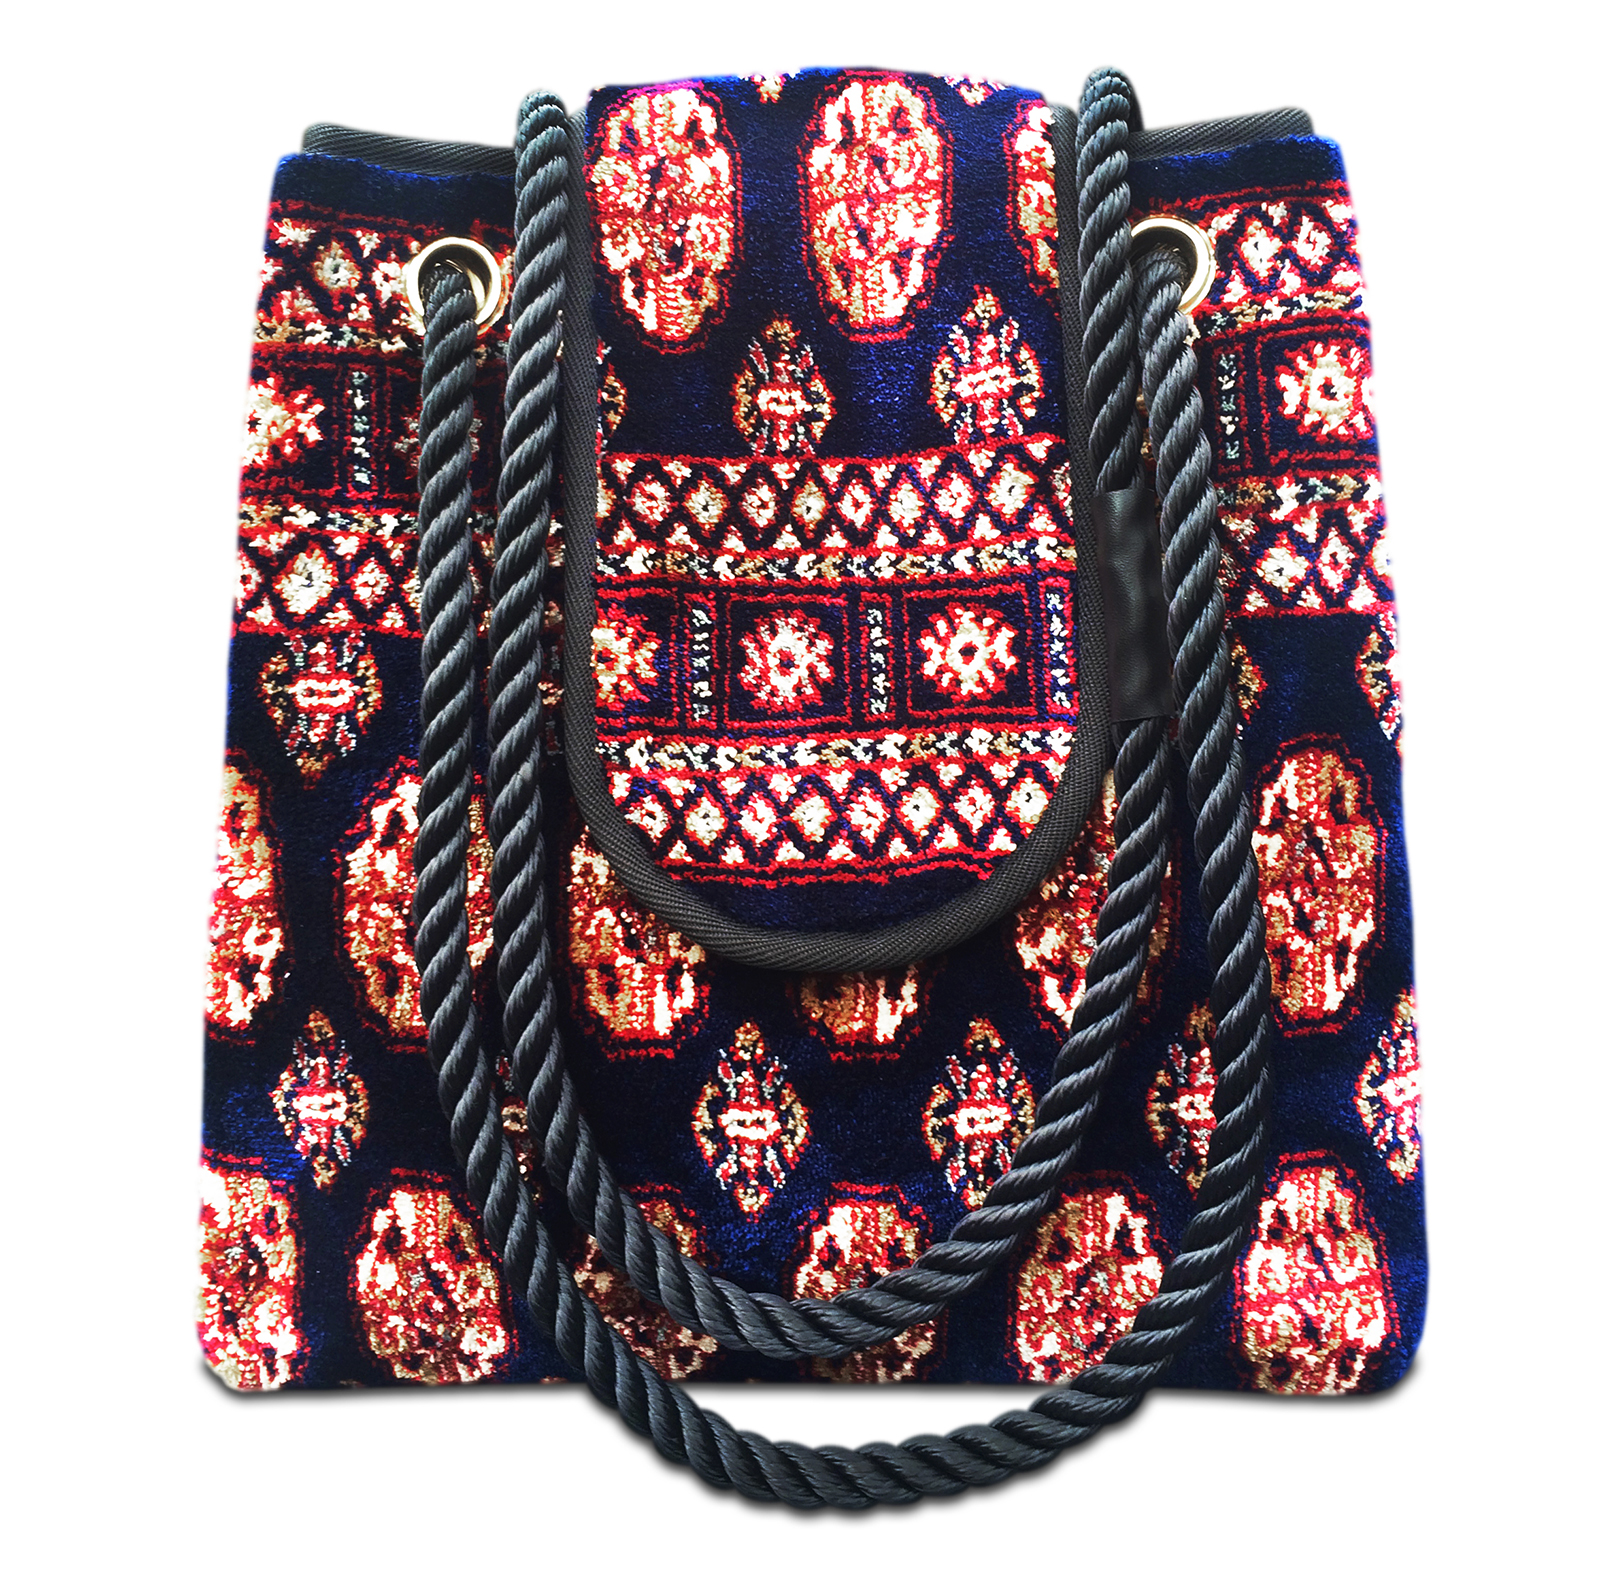 Image of TORBA PLUS Bukhara Navy Victorian Carpet Bag.